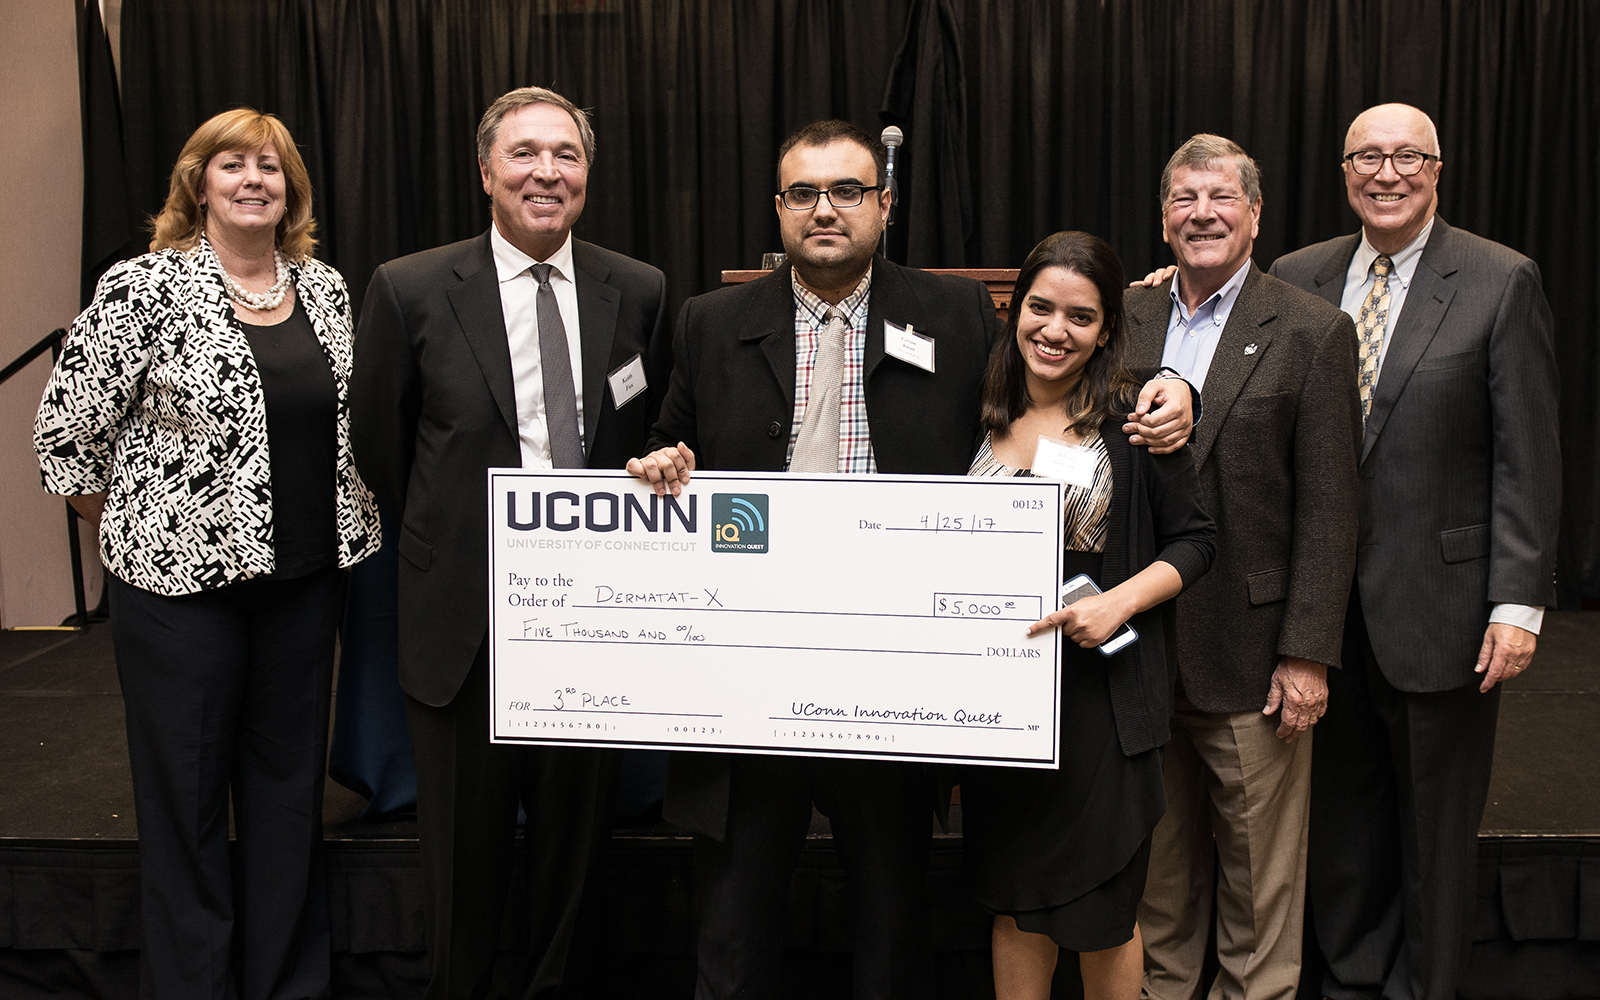 From left: Management Department Head Lucy Gilson, Alumnus Keith Fox '80, Dermatat-X team members Faizan Khan and Ishita Banerjee, School of Business Dean John Elliott, and Management Professor Rich Dino (Nathan Oldham/UConn School of Business)